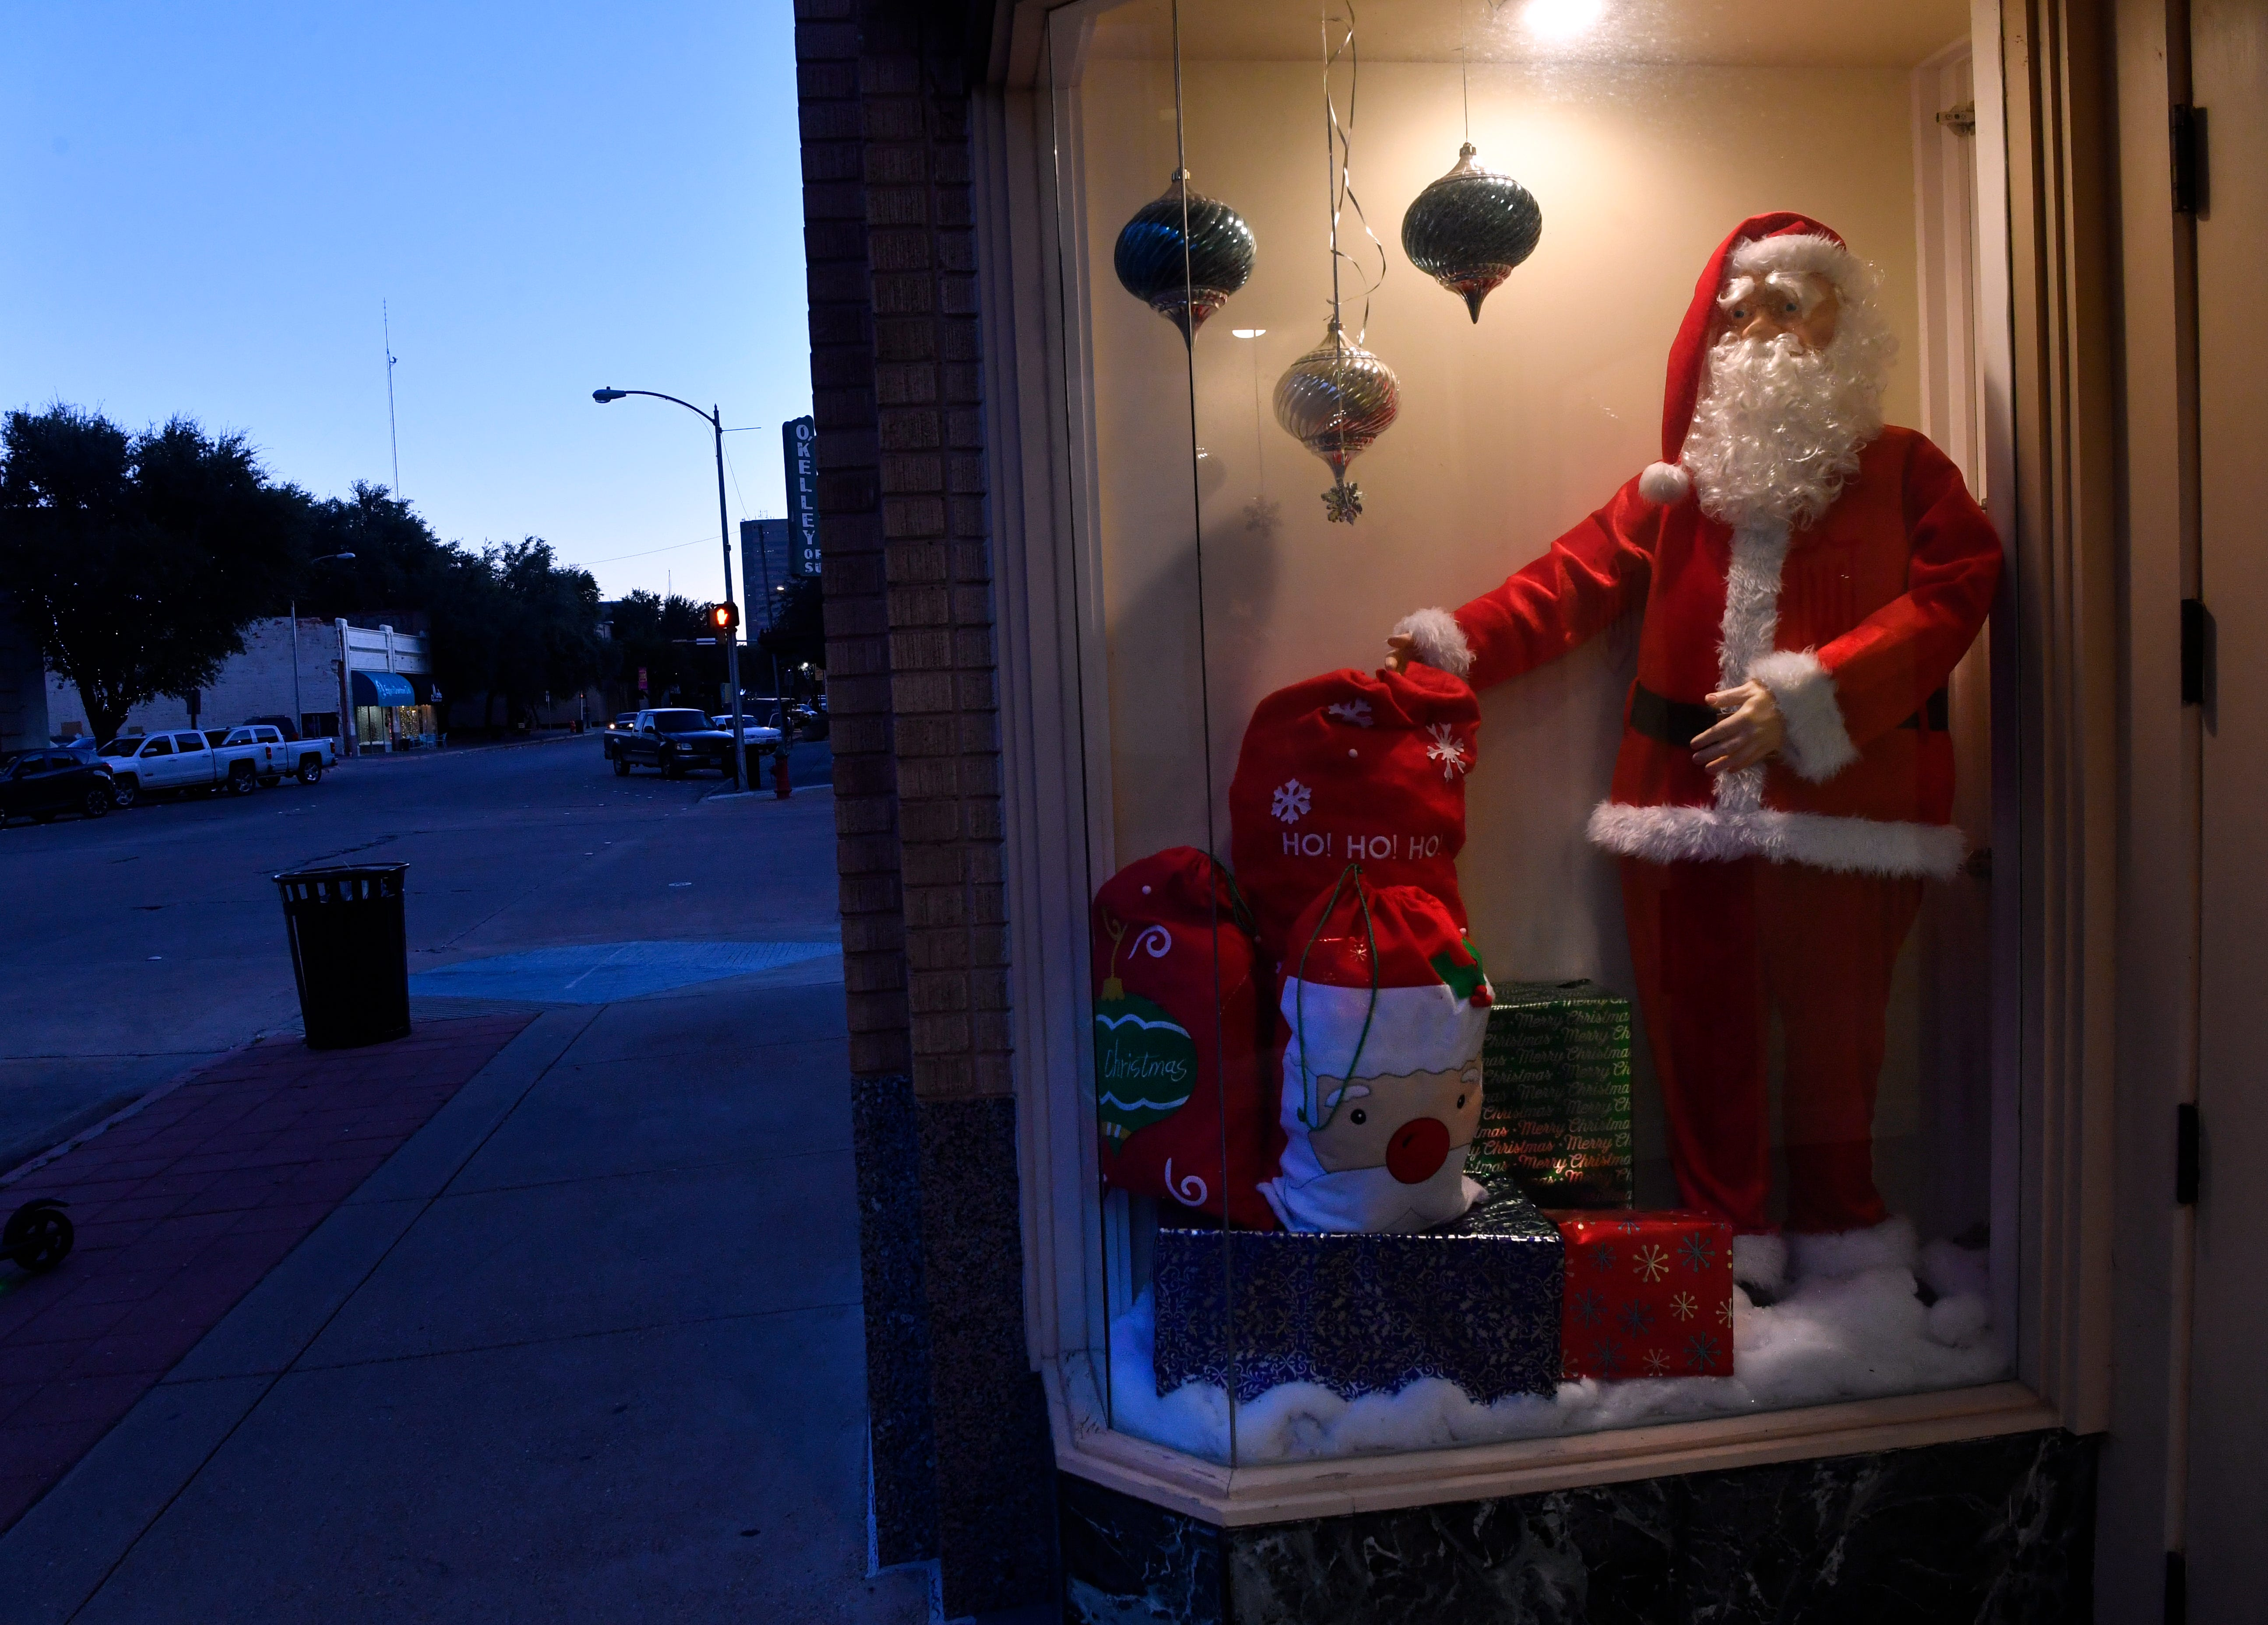 A Santa Claus figure stands on display in a window at Hotel Wooten Tuesday.